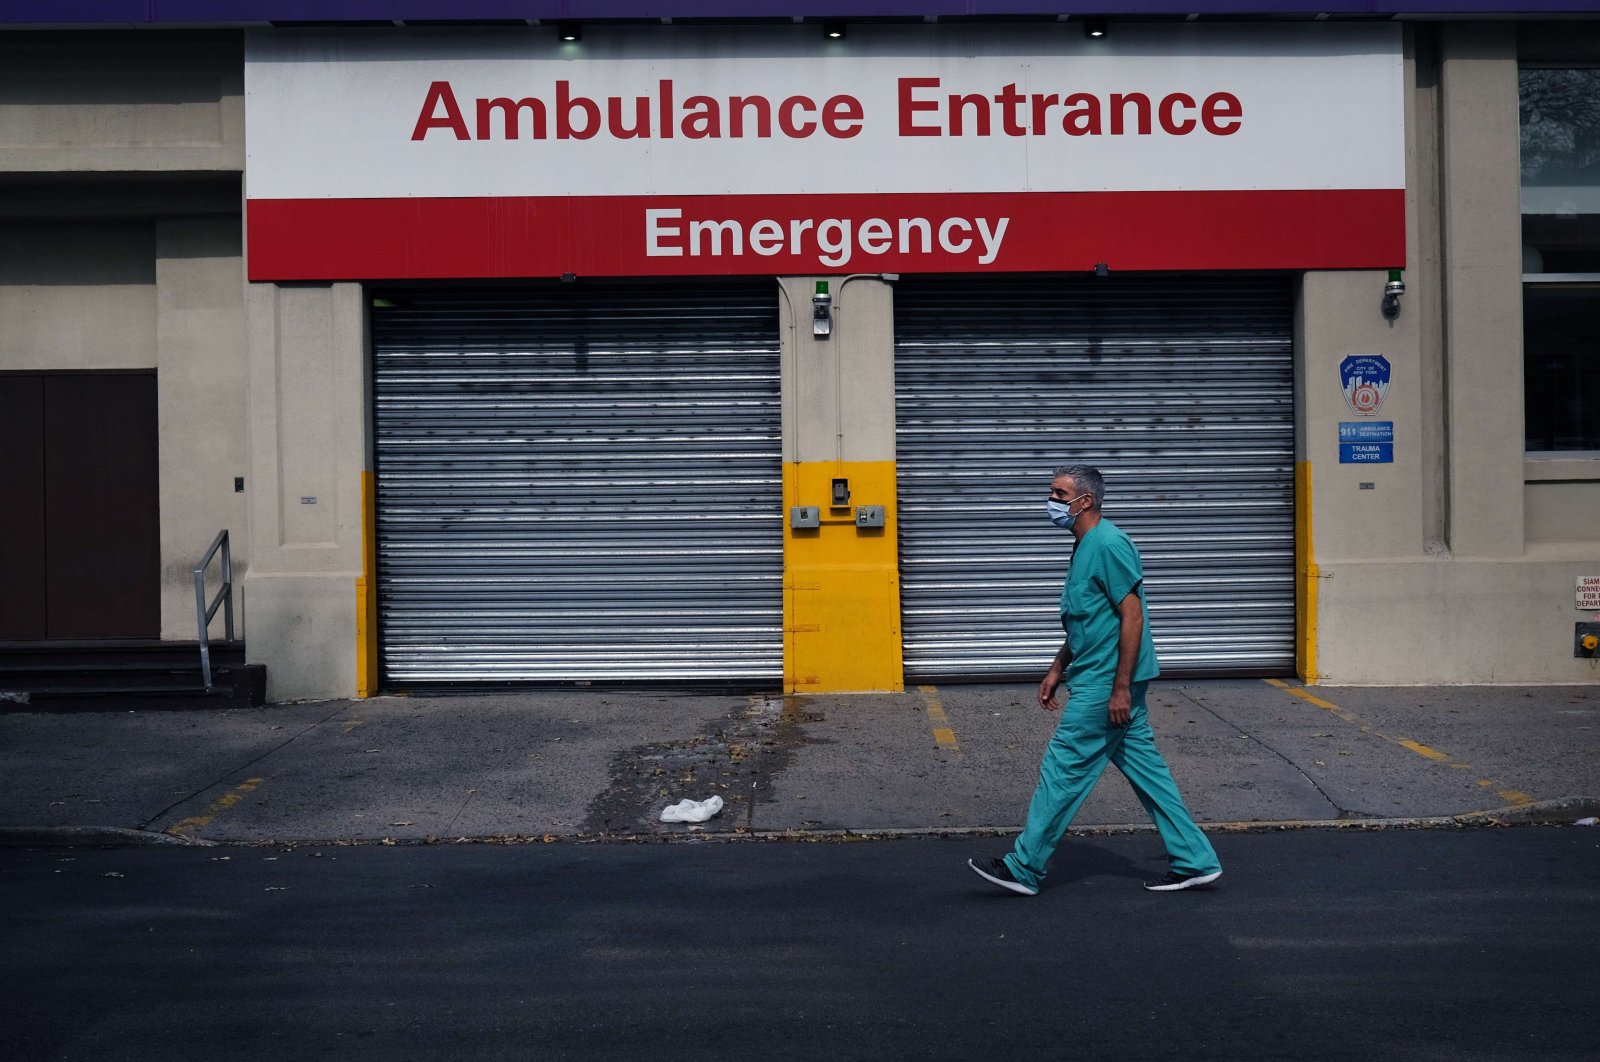 A medical worker walks by a hospital in a neighborhood that saw a significant number of COVID-19 cases early on in the pandemic in Brooklyn, New York City, New York, U.S., Sept. 14, 2020. (AFP Photo)